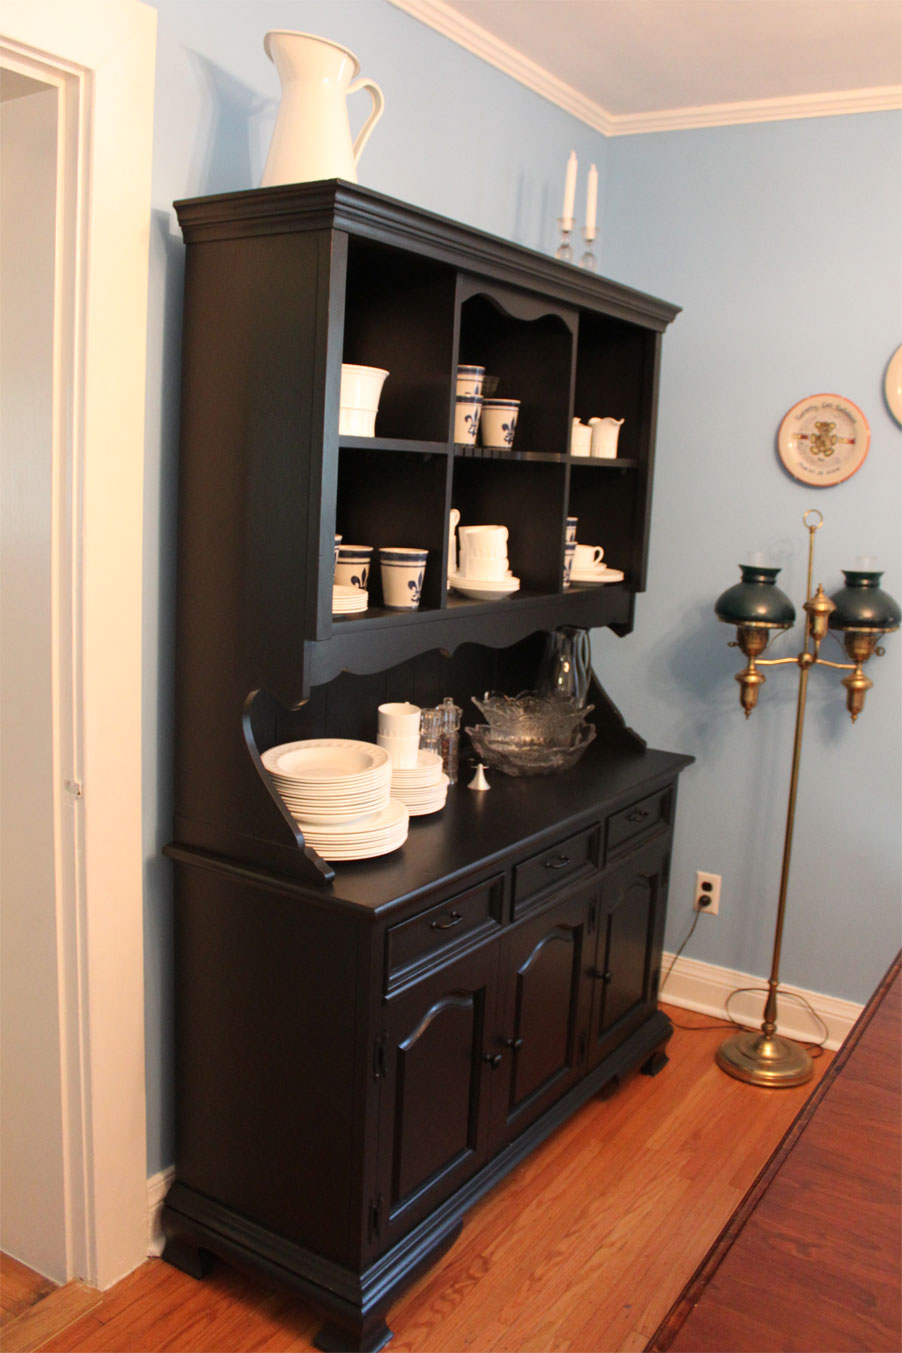 1000 images about Hutch on Pinterest  Hutch makeover